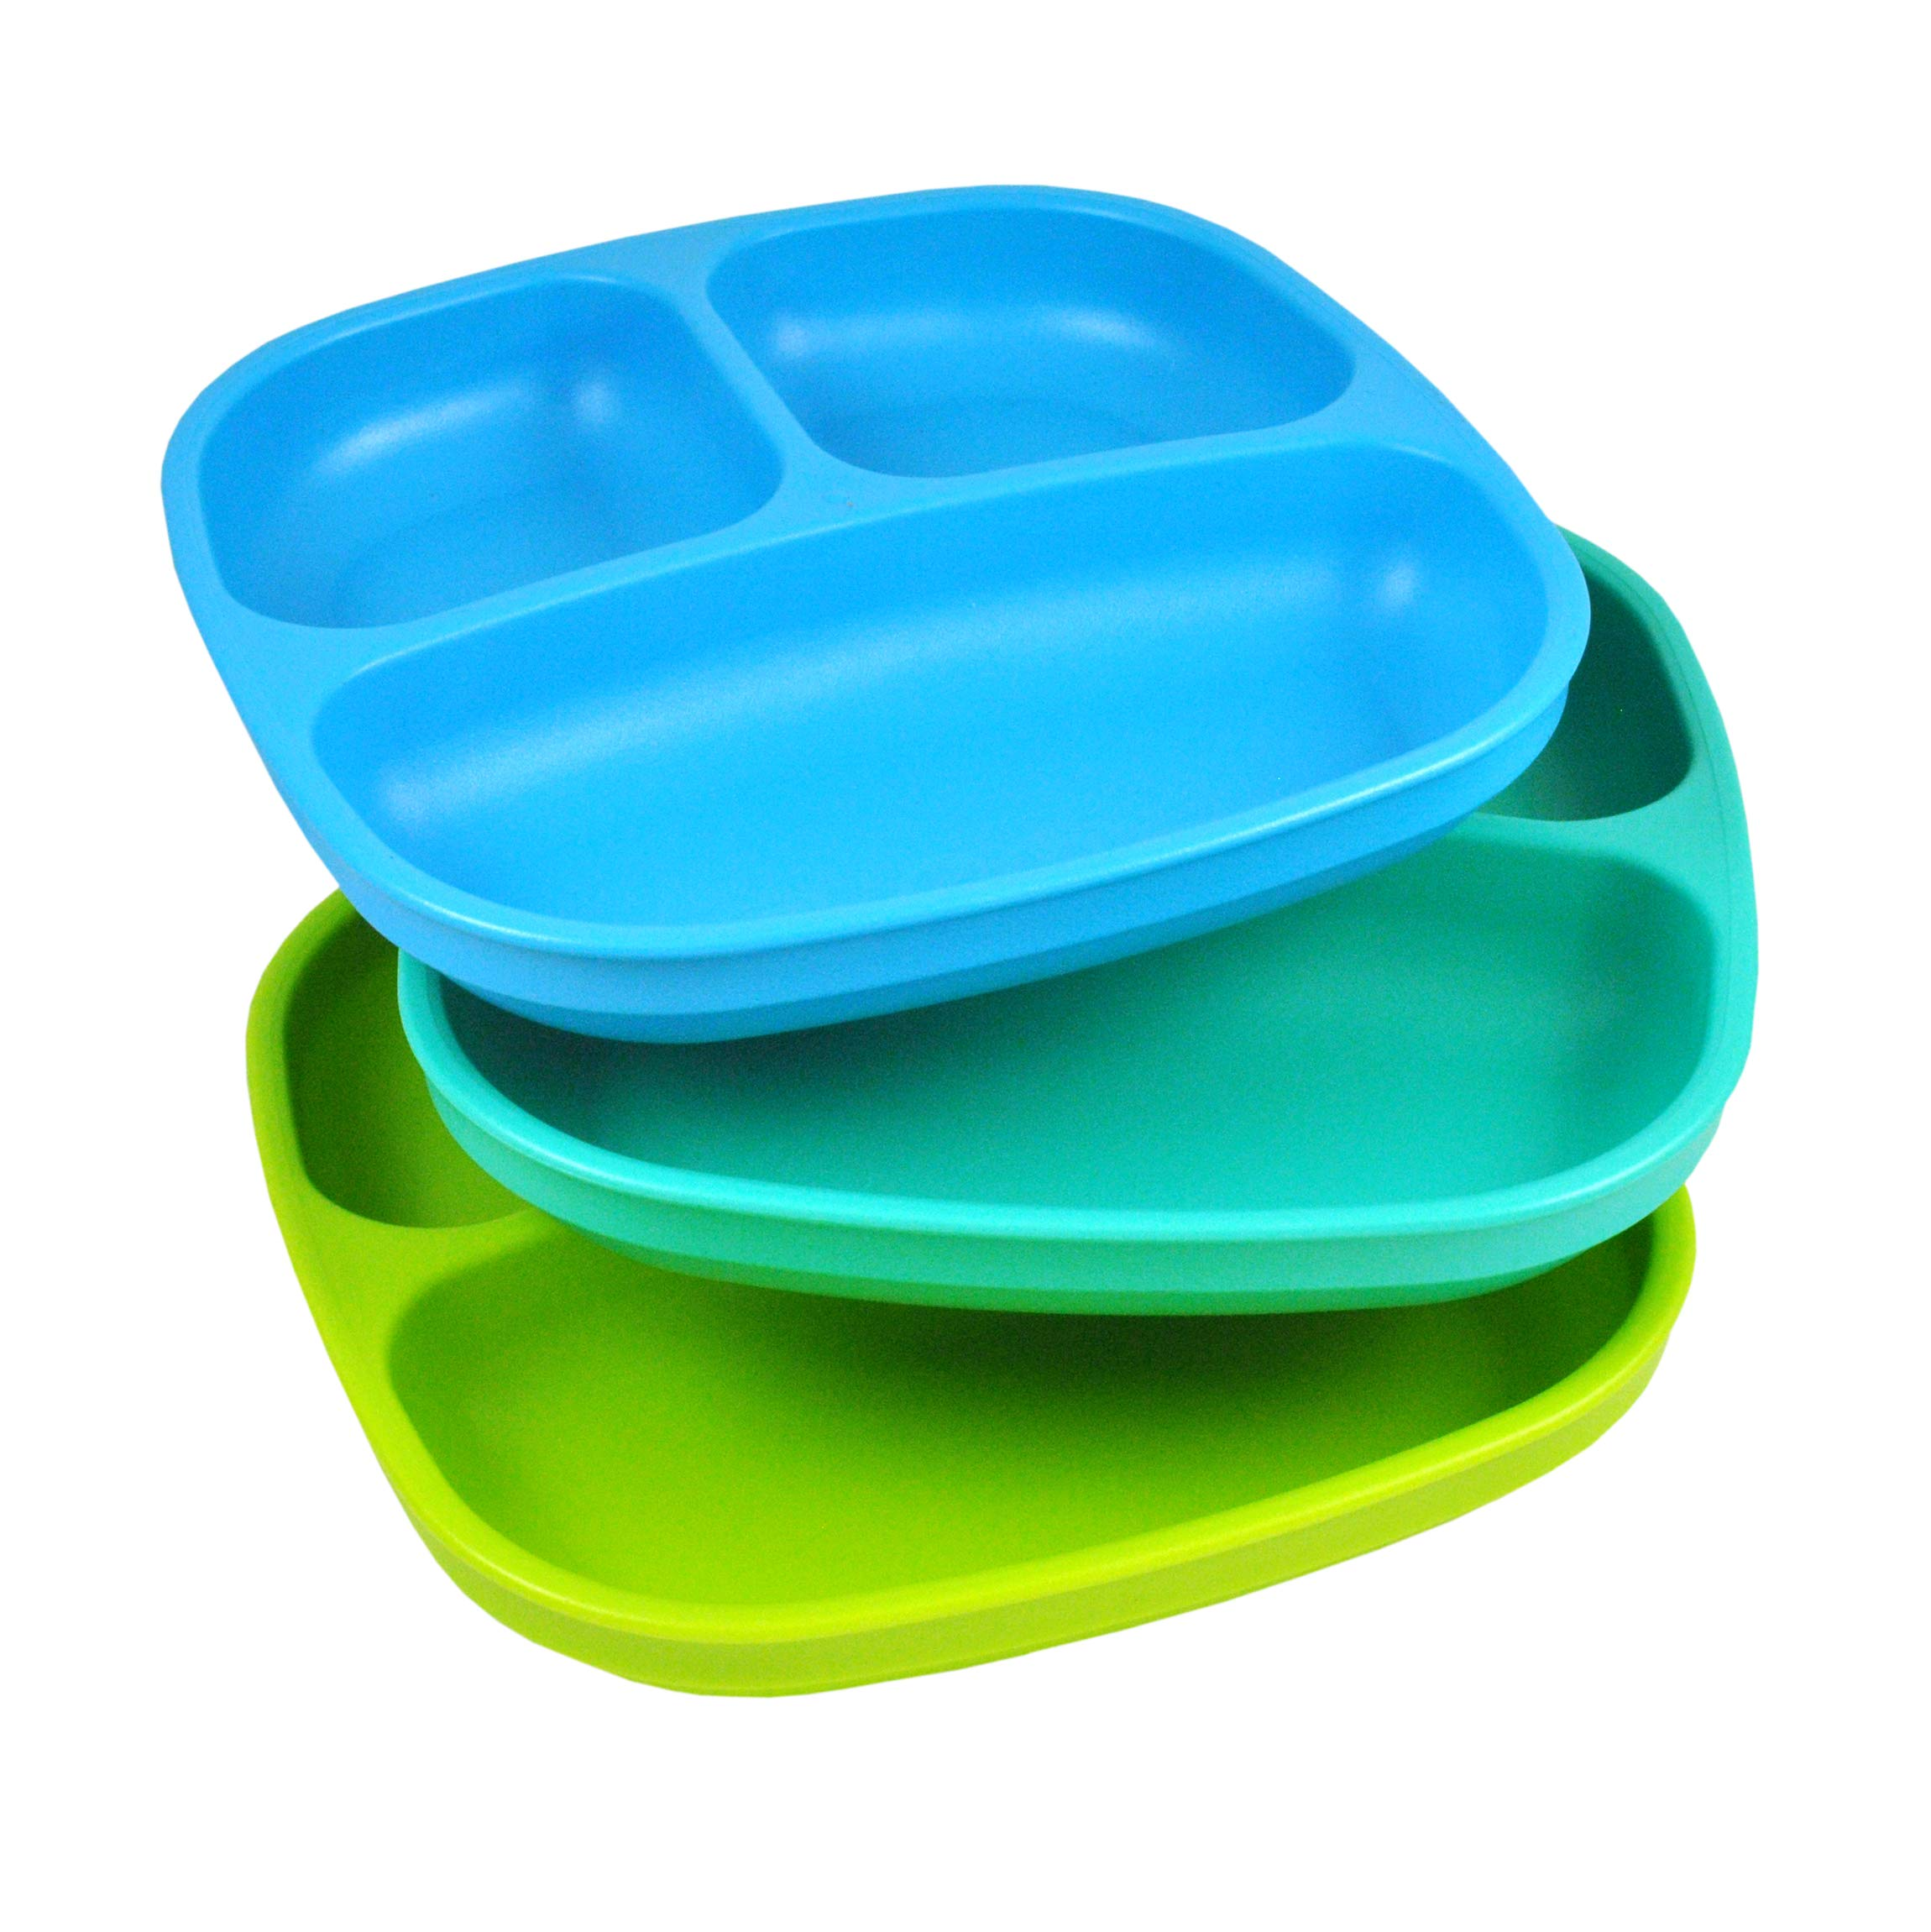 Re-Play Made in USA 3pk Divided Plates with Deep Sides for Easy Baby, Toddler, Child Feeding - Sky Blue, Aqua & Green (Under The Sea) by Re Play